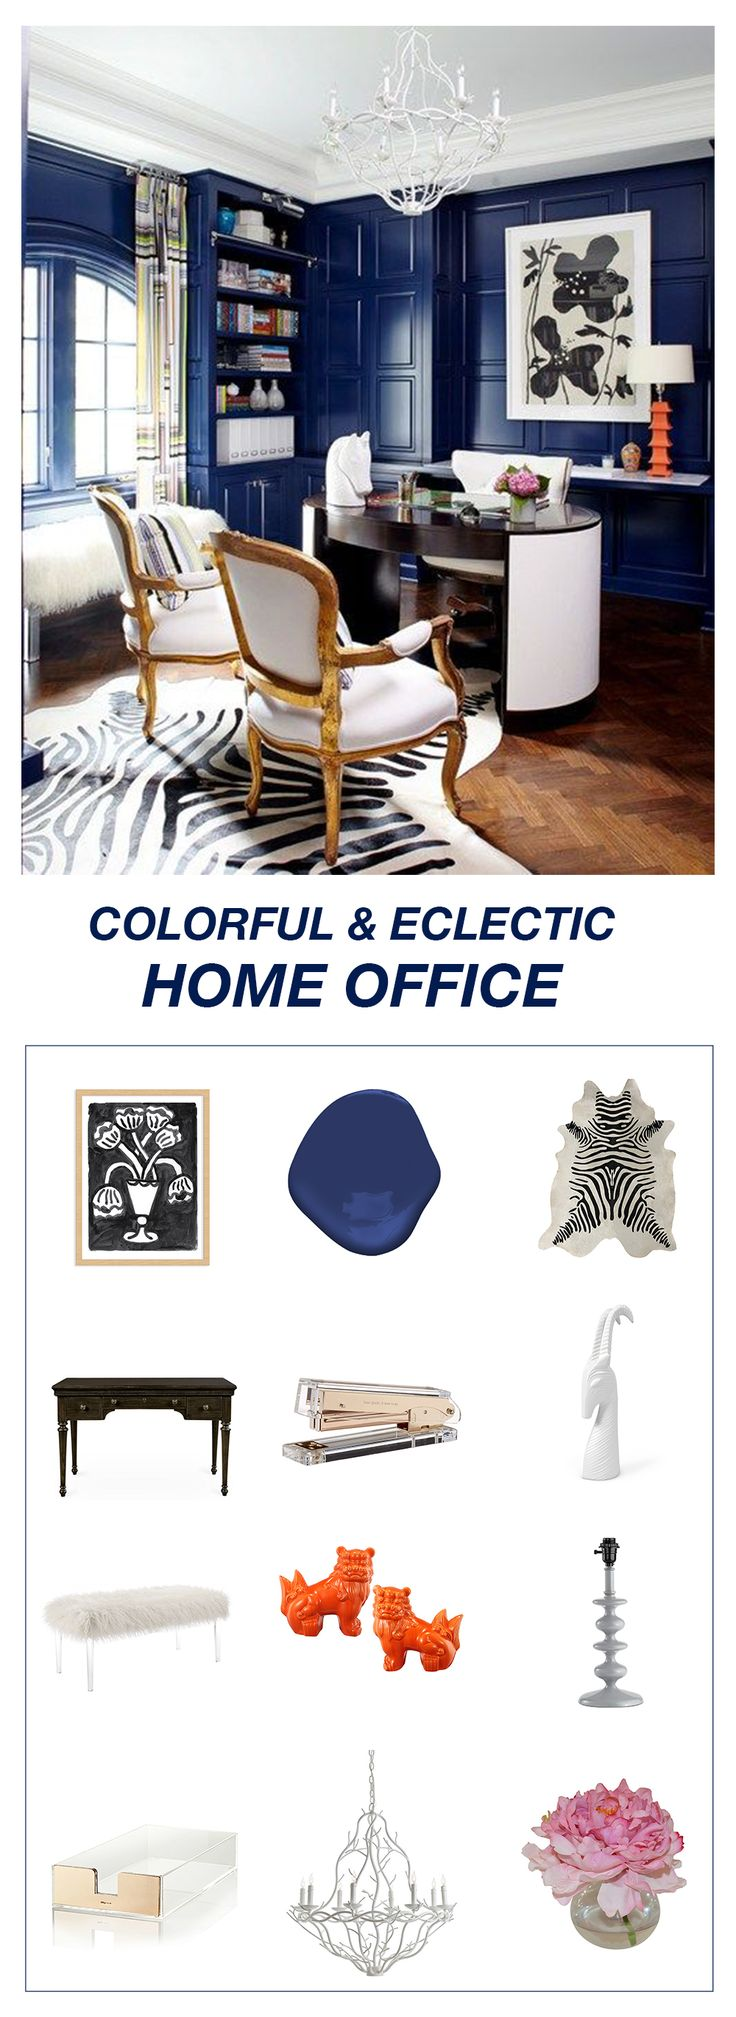 Get the look: colorful & eclectic home office accessories